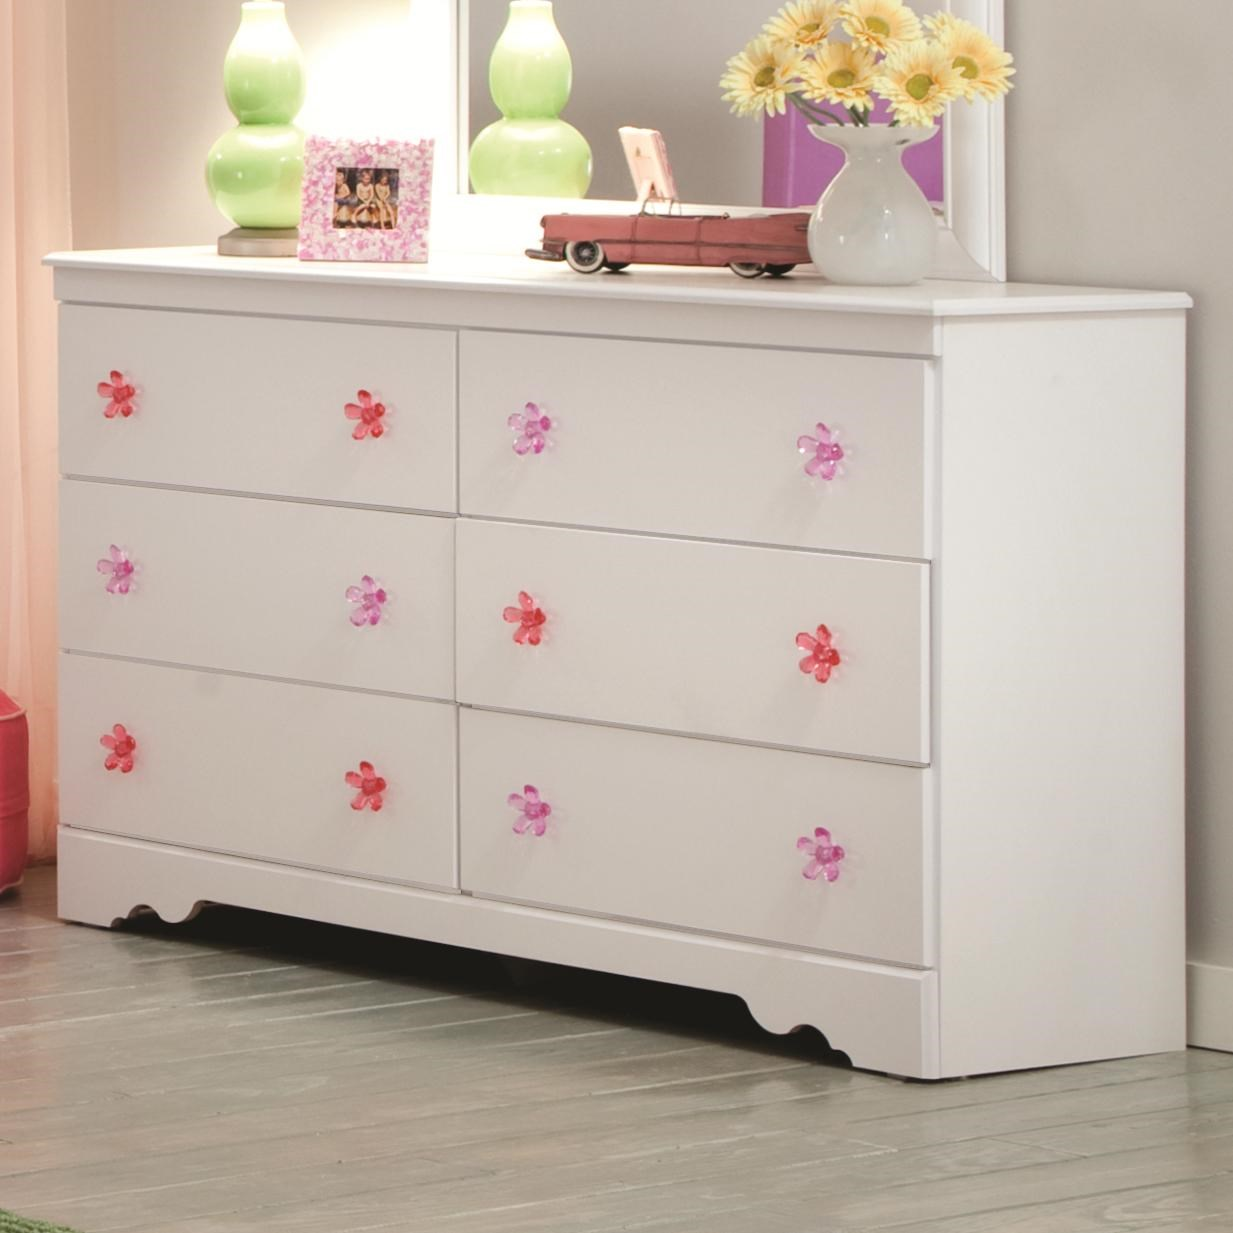 Charmant Kith Furniture Savannah 6 Drawer Dresser With Flower Shaped Handles